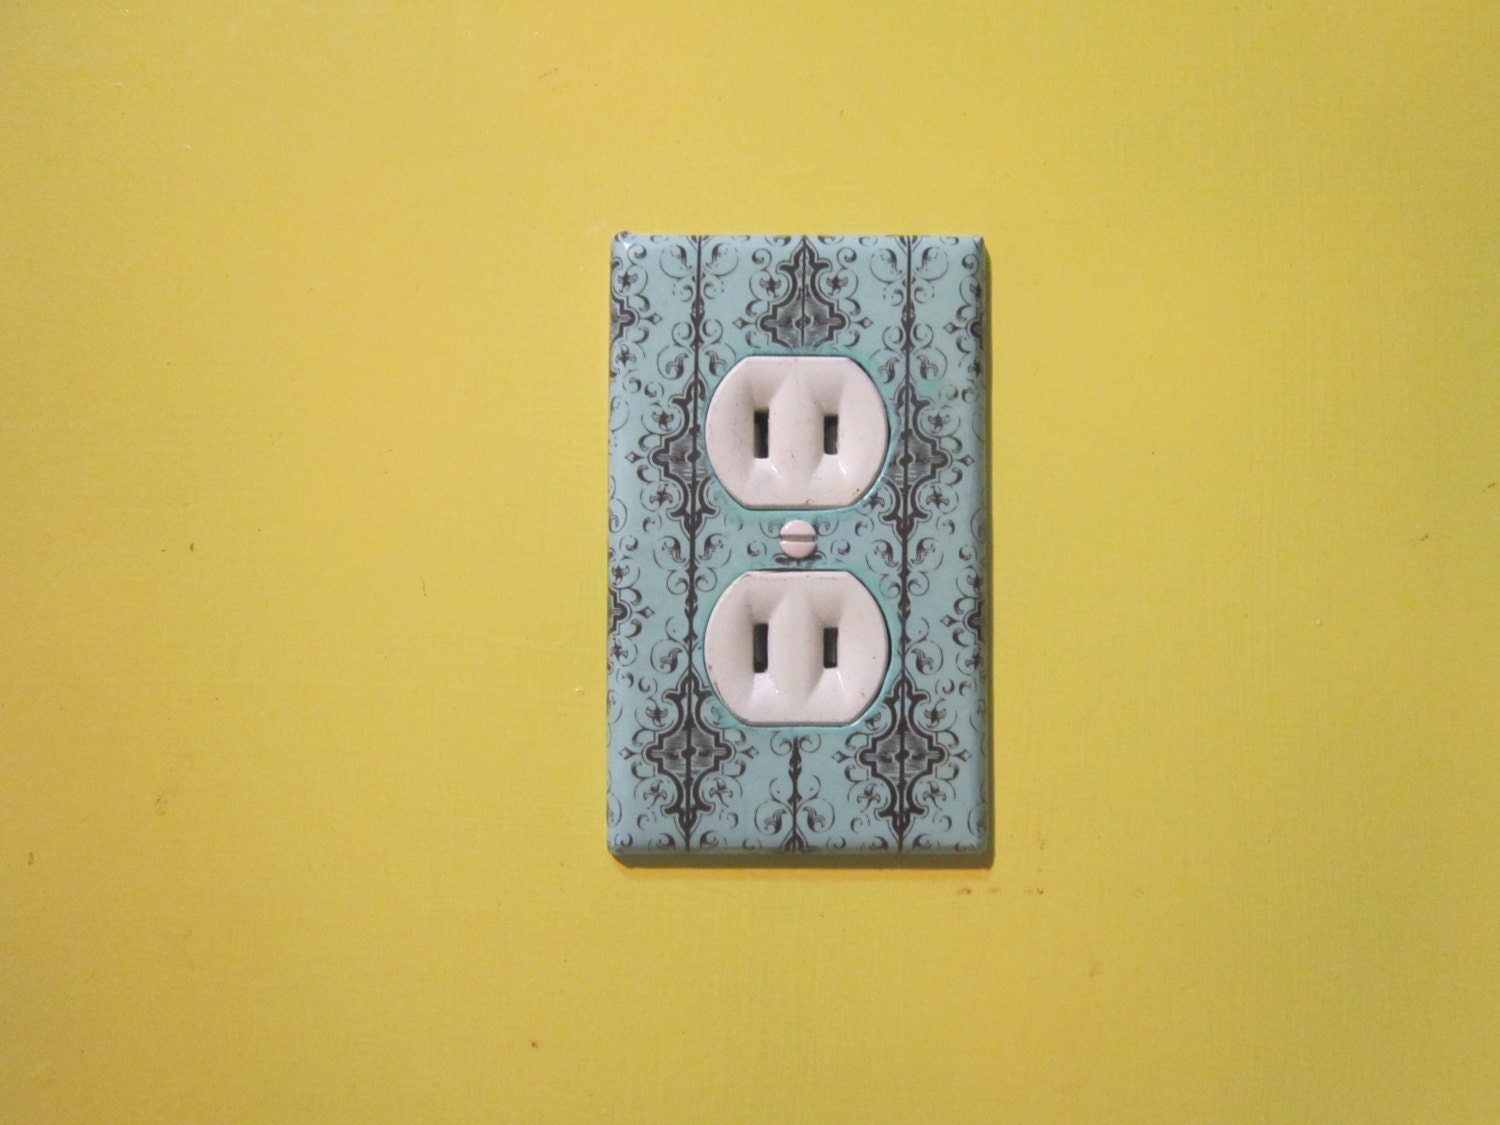 Electrical Outlet/Socket Covers Plates Decorative Cottage